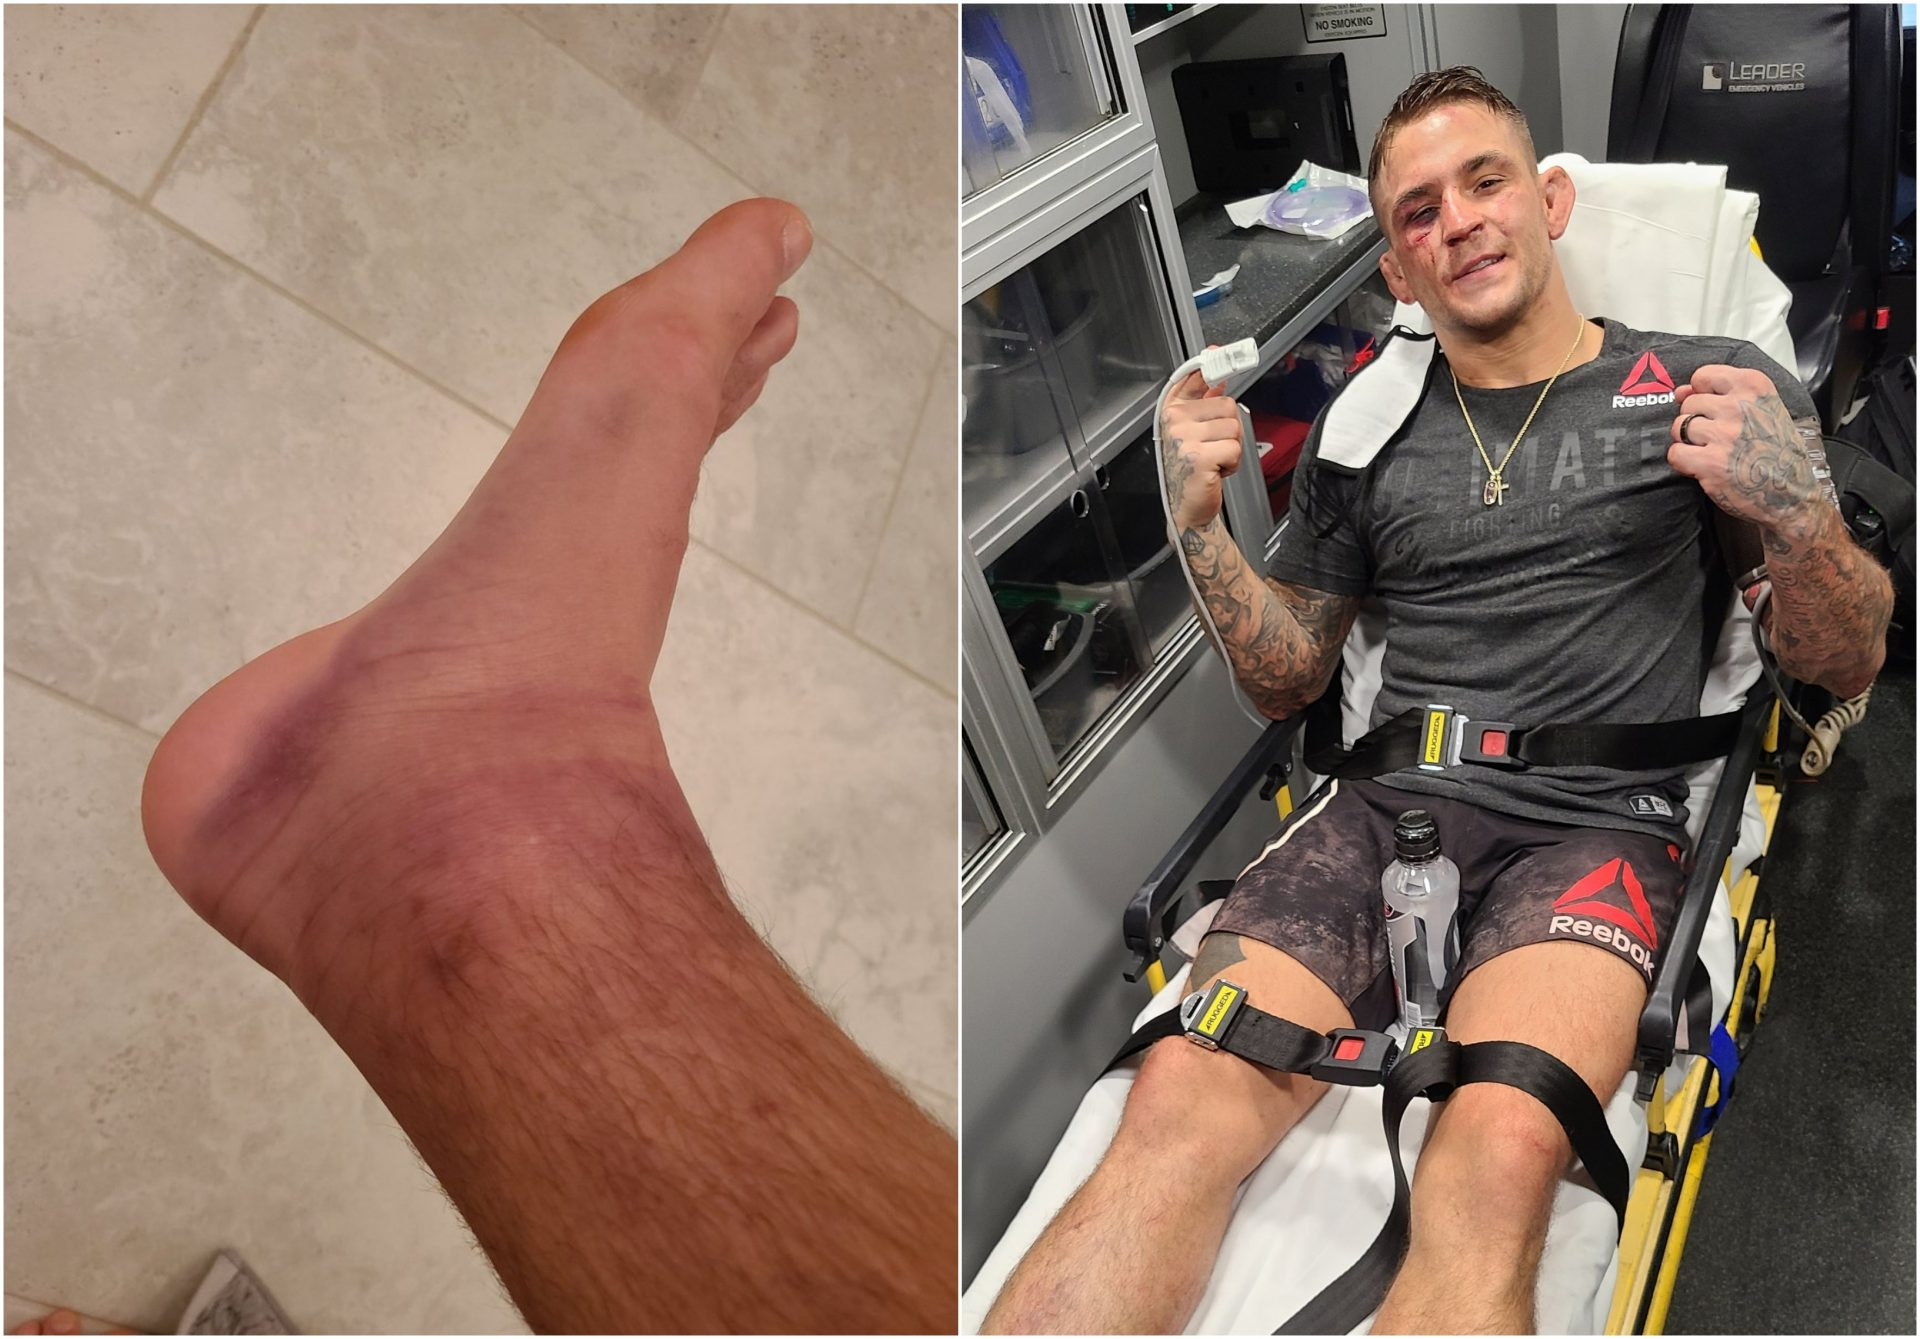 Dustin Poirier shows off after effects of brutal fight against Dan Hooker - Dustin Poirier